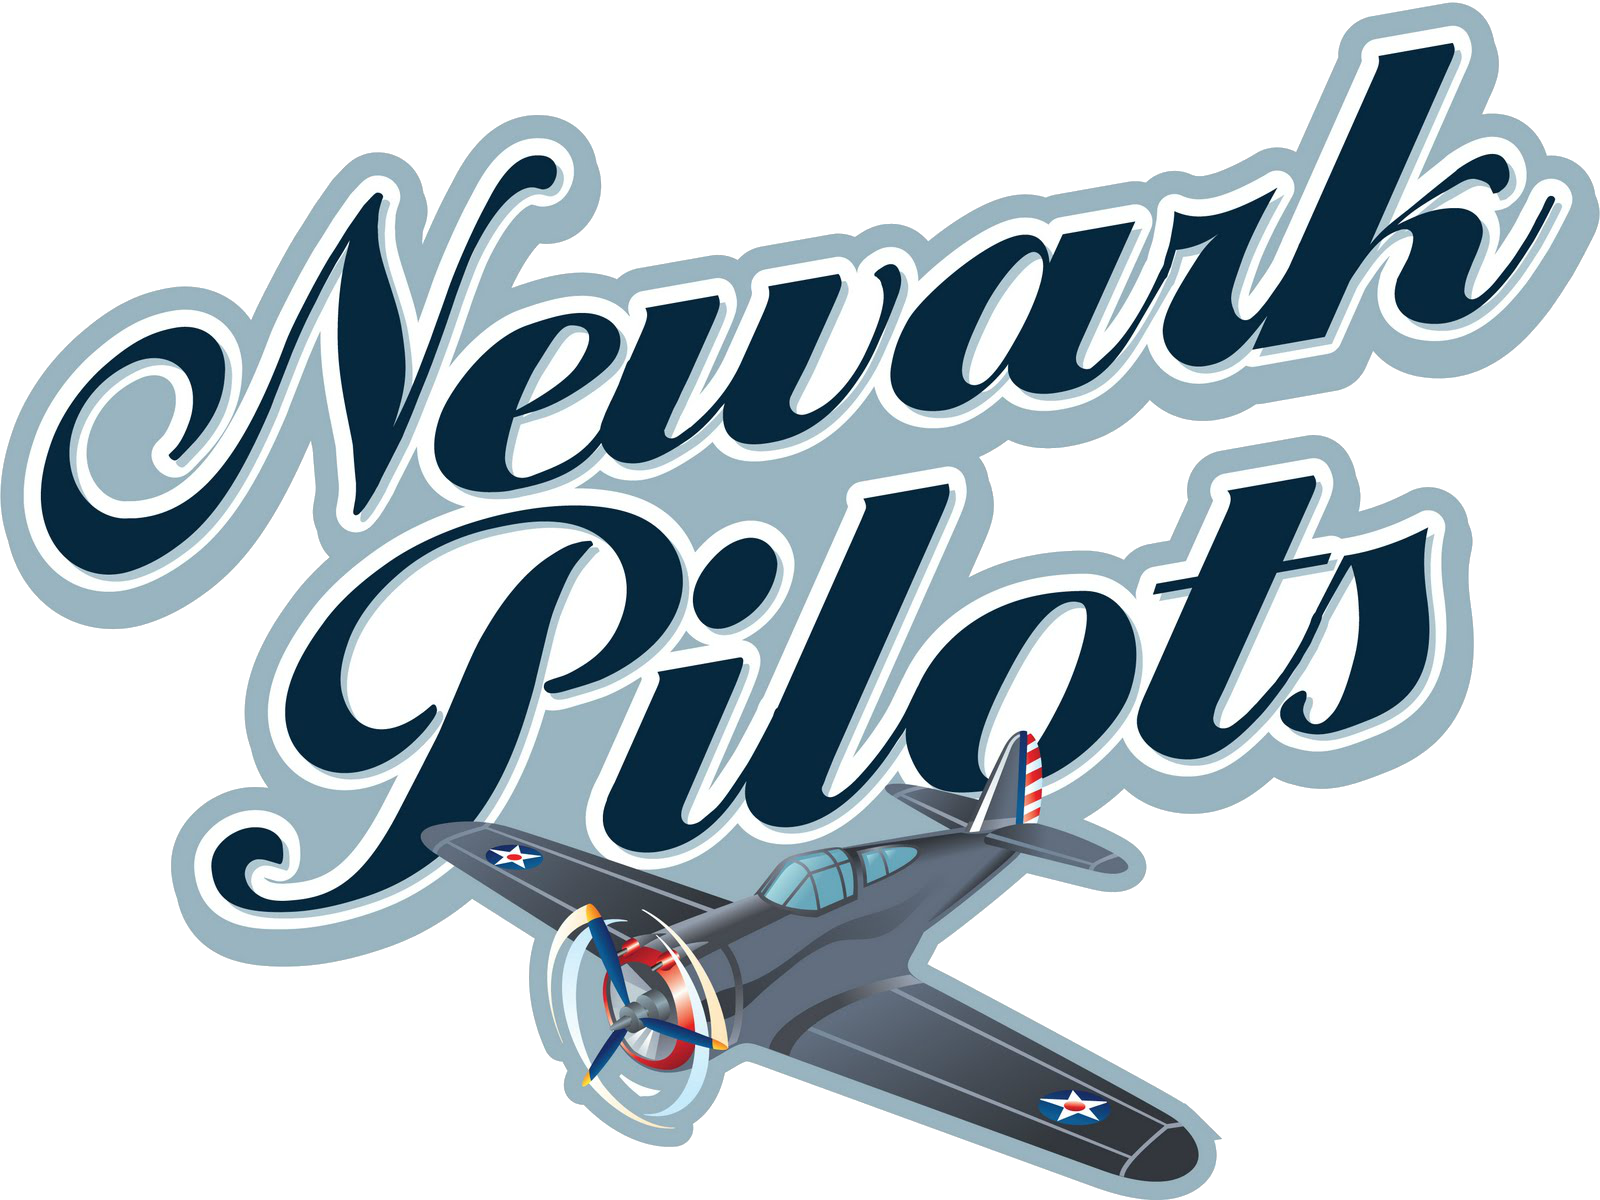 Pilots